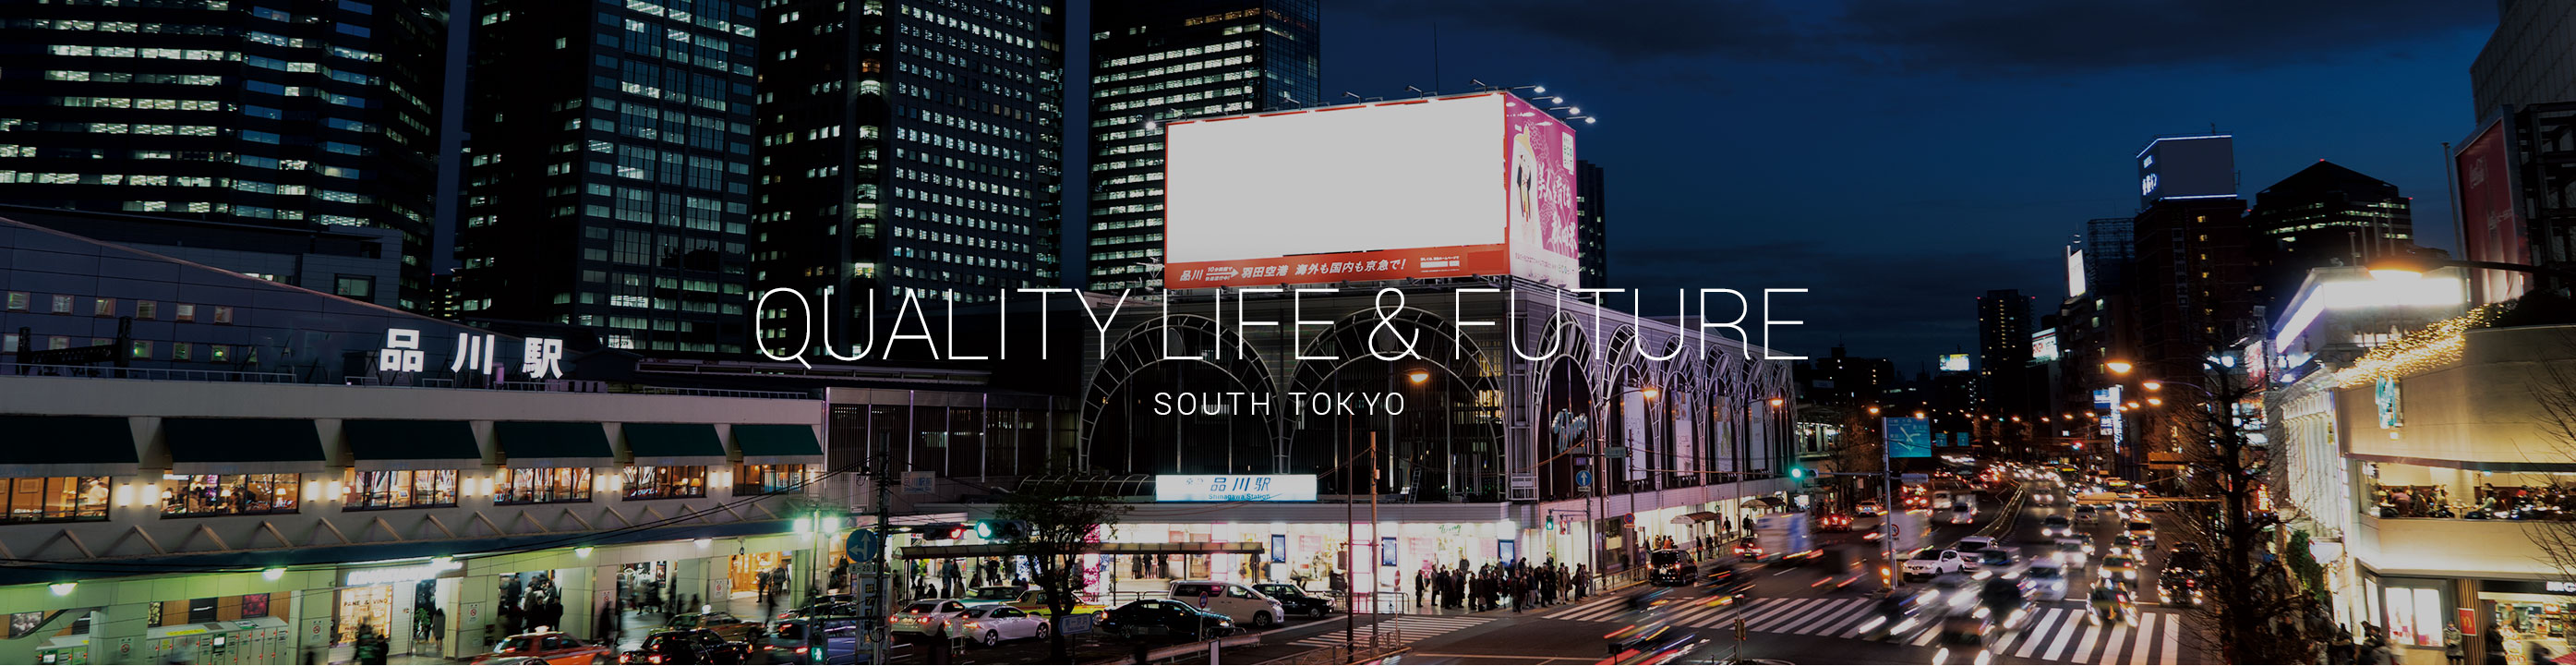 QUALITY LIFE & FUTURE SOUTH TOKYO